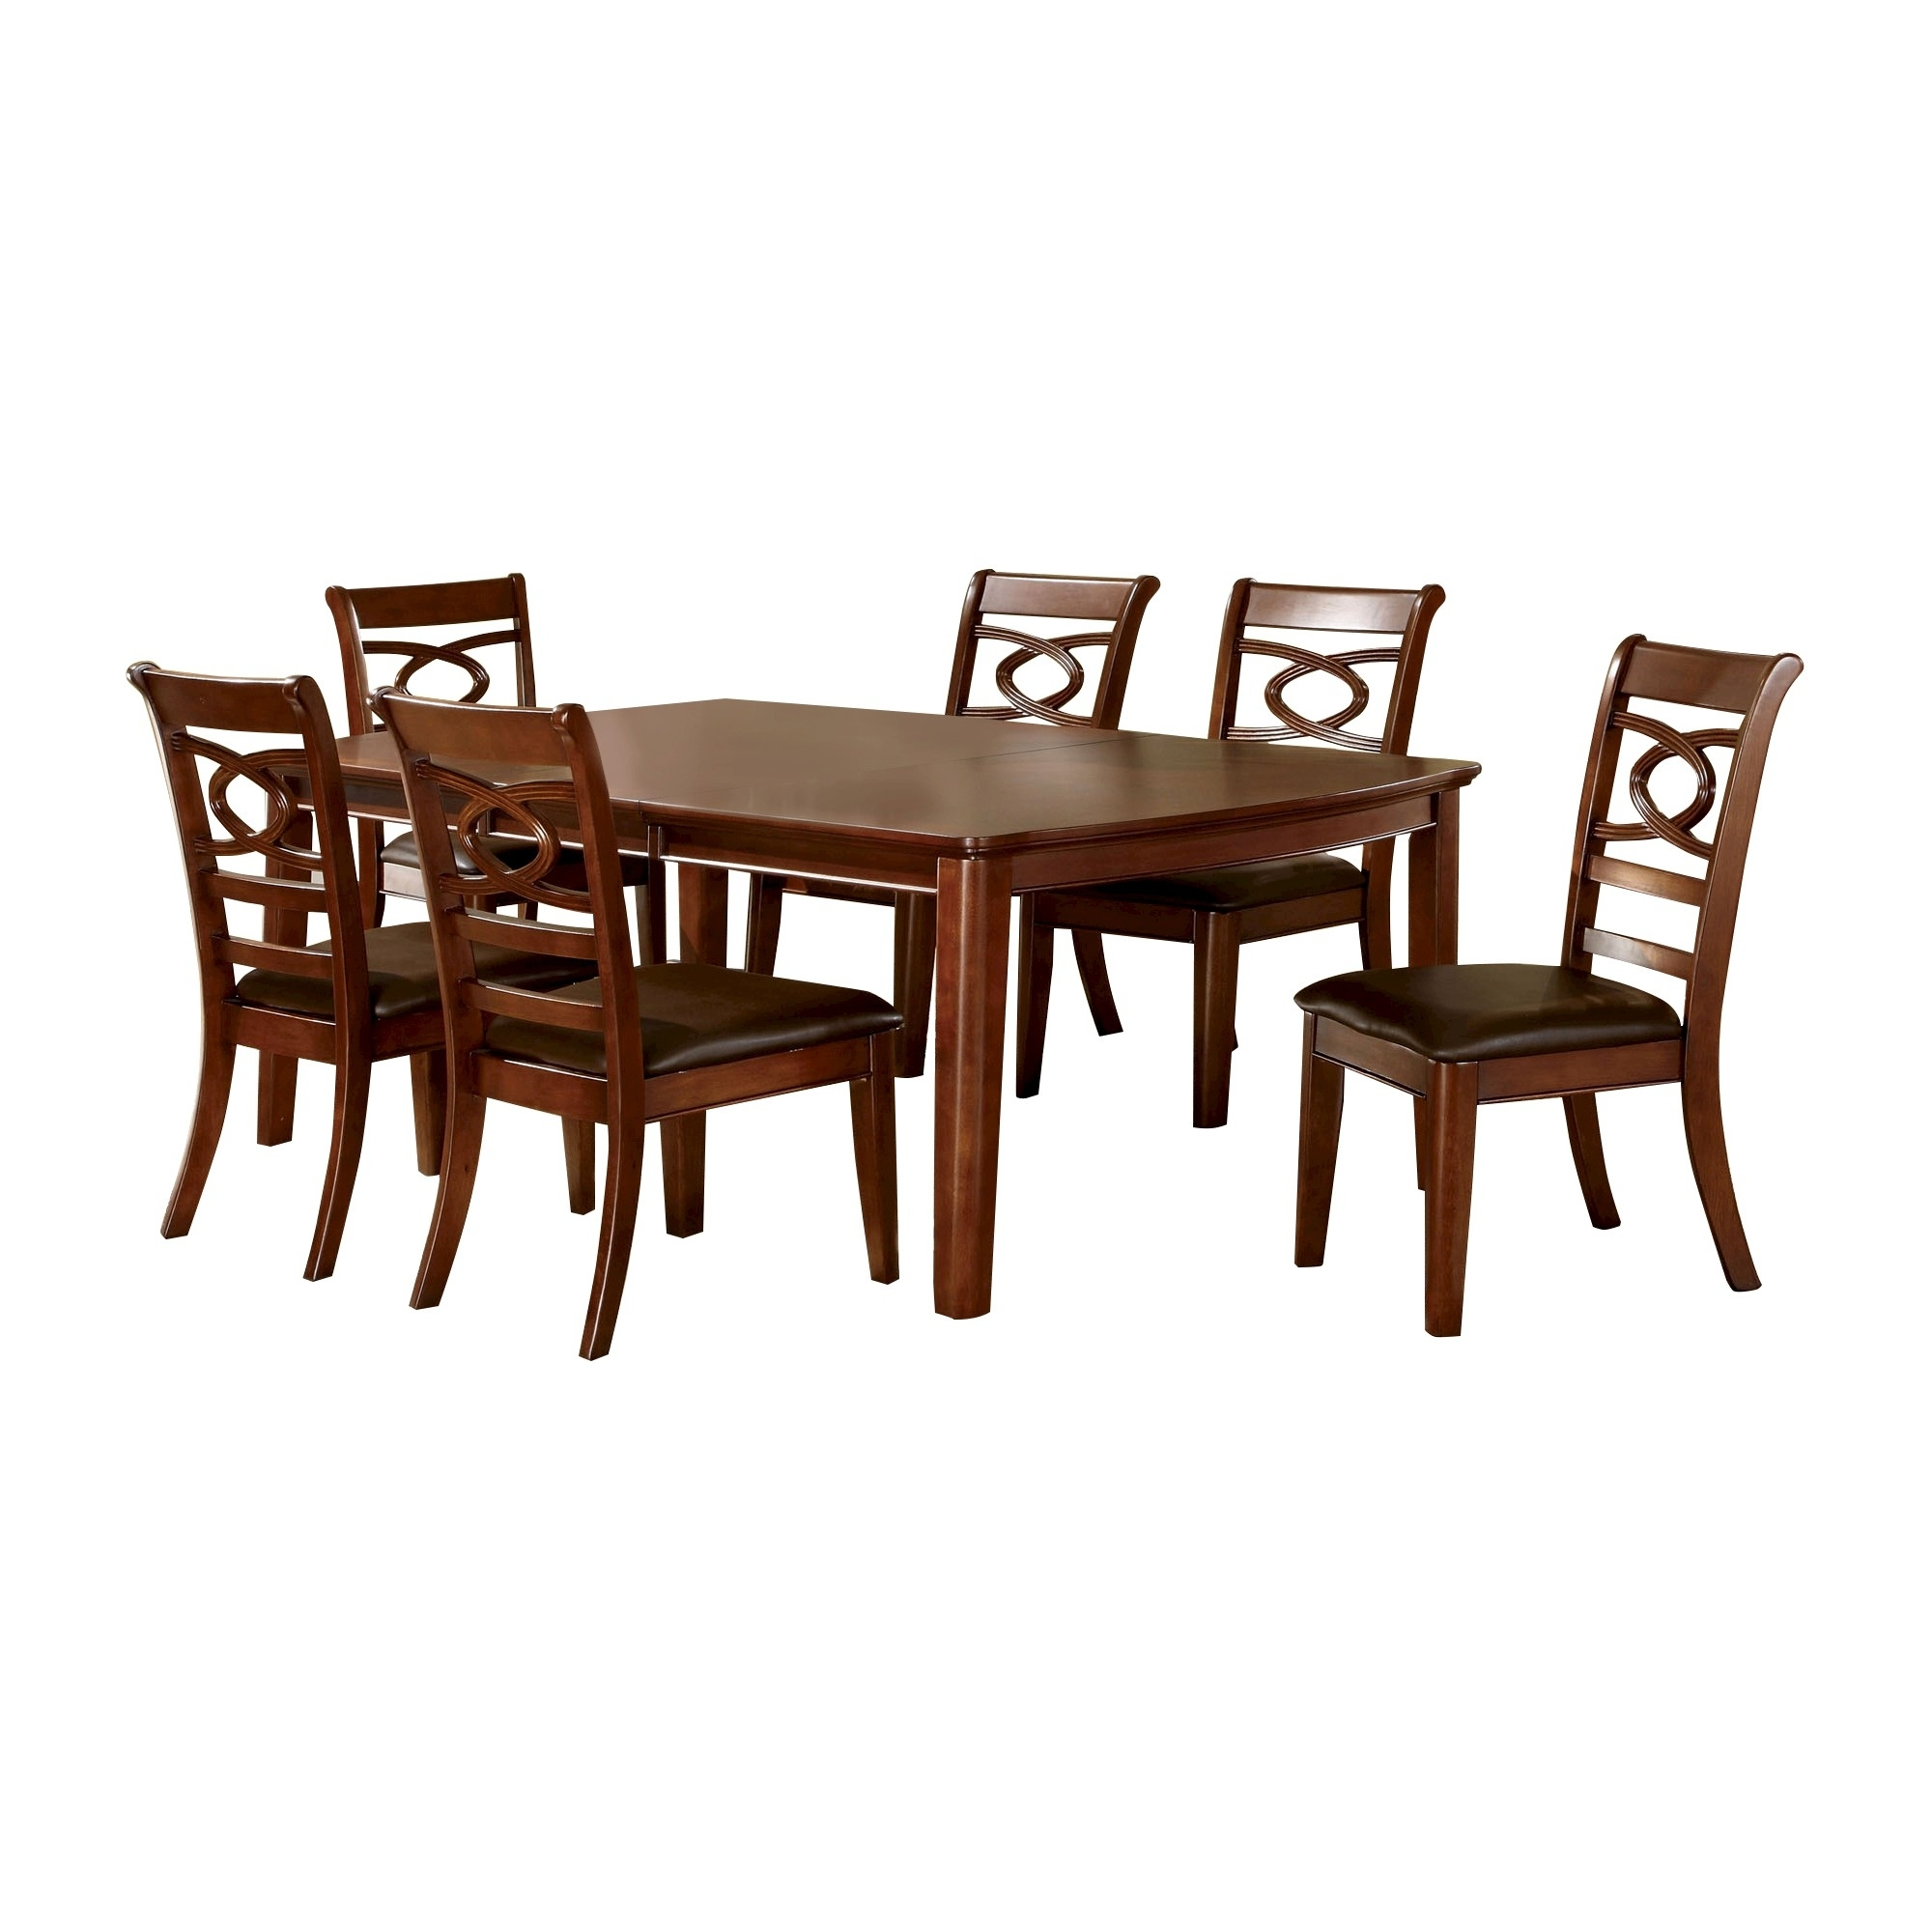 Sun & Pine 7Pc Simple Dining Table Set Wood/brown Cherry | Products Pertaining To Most Popular Norwood 7 Piece Rectangular Extension Dining Sets With Bench & Uph Side Chairs (Image 18 of 20)